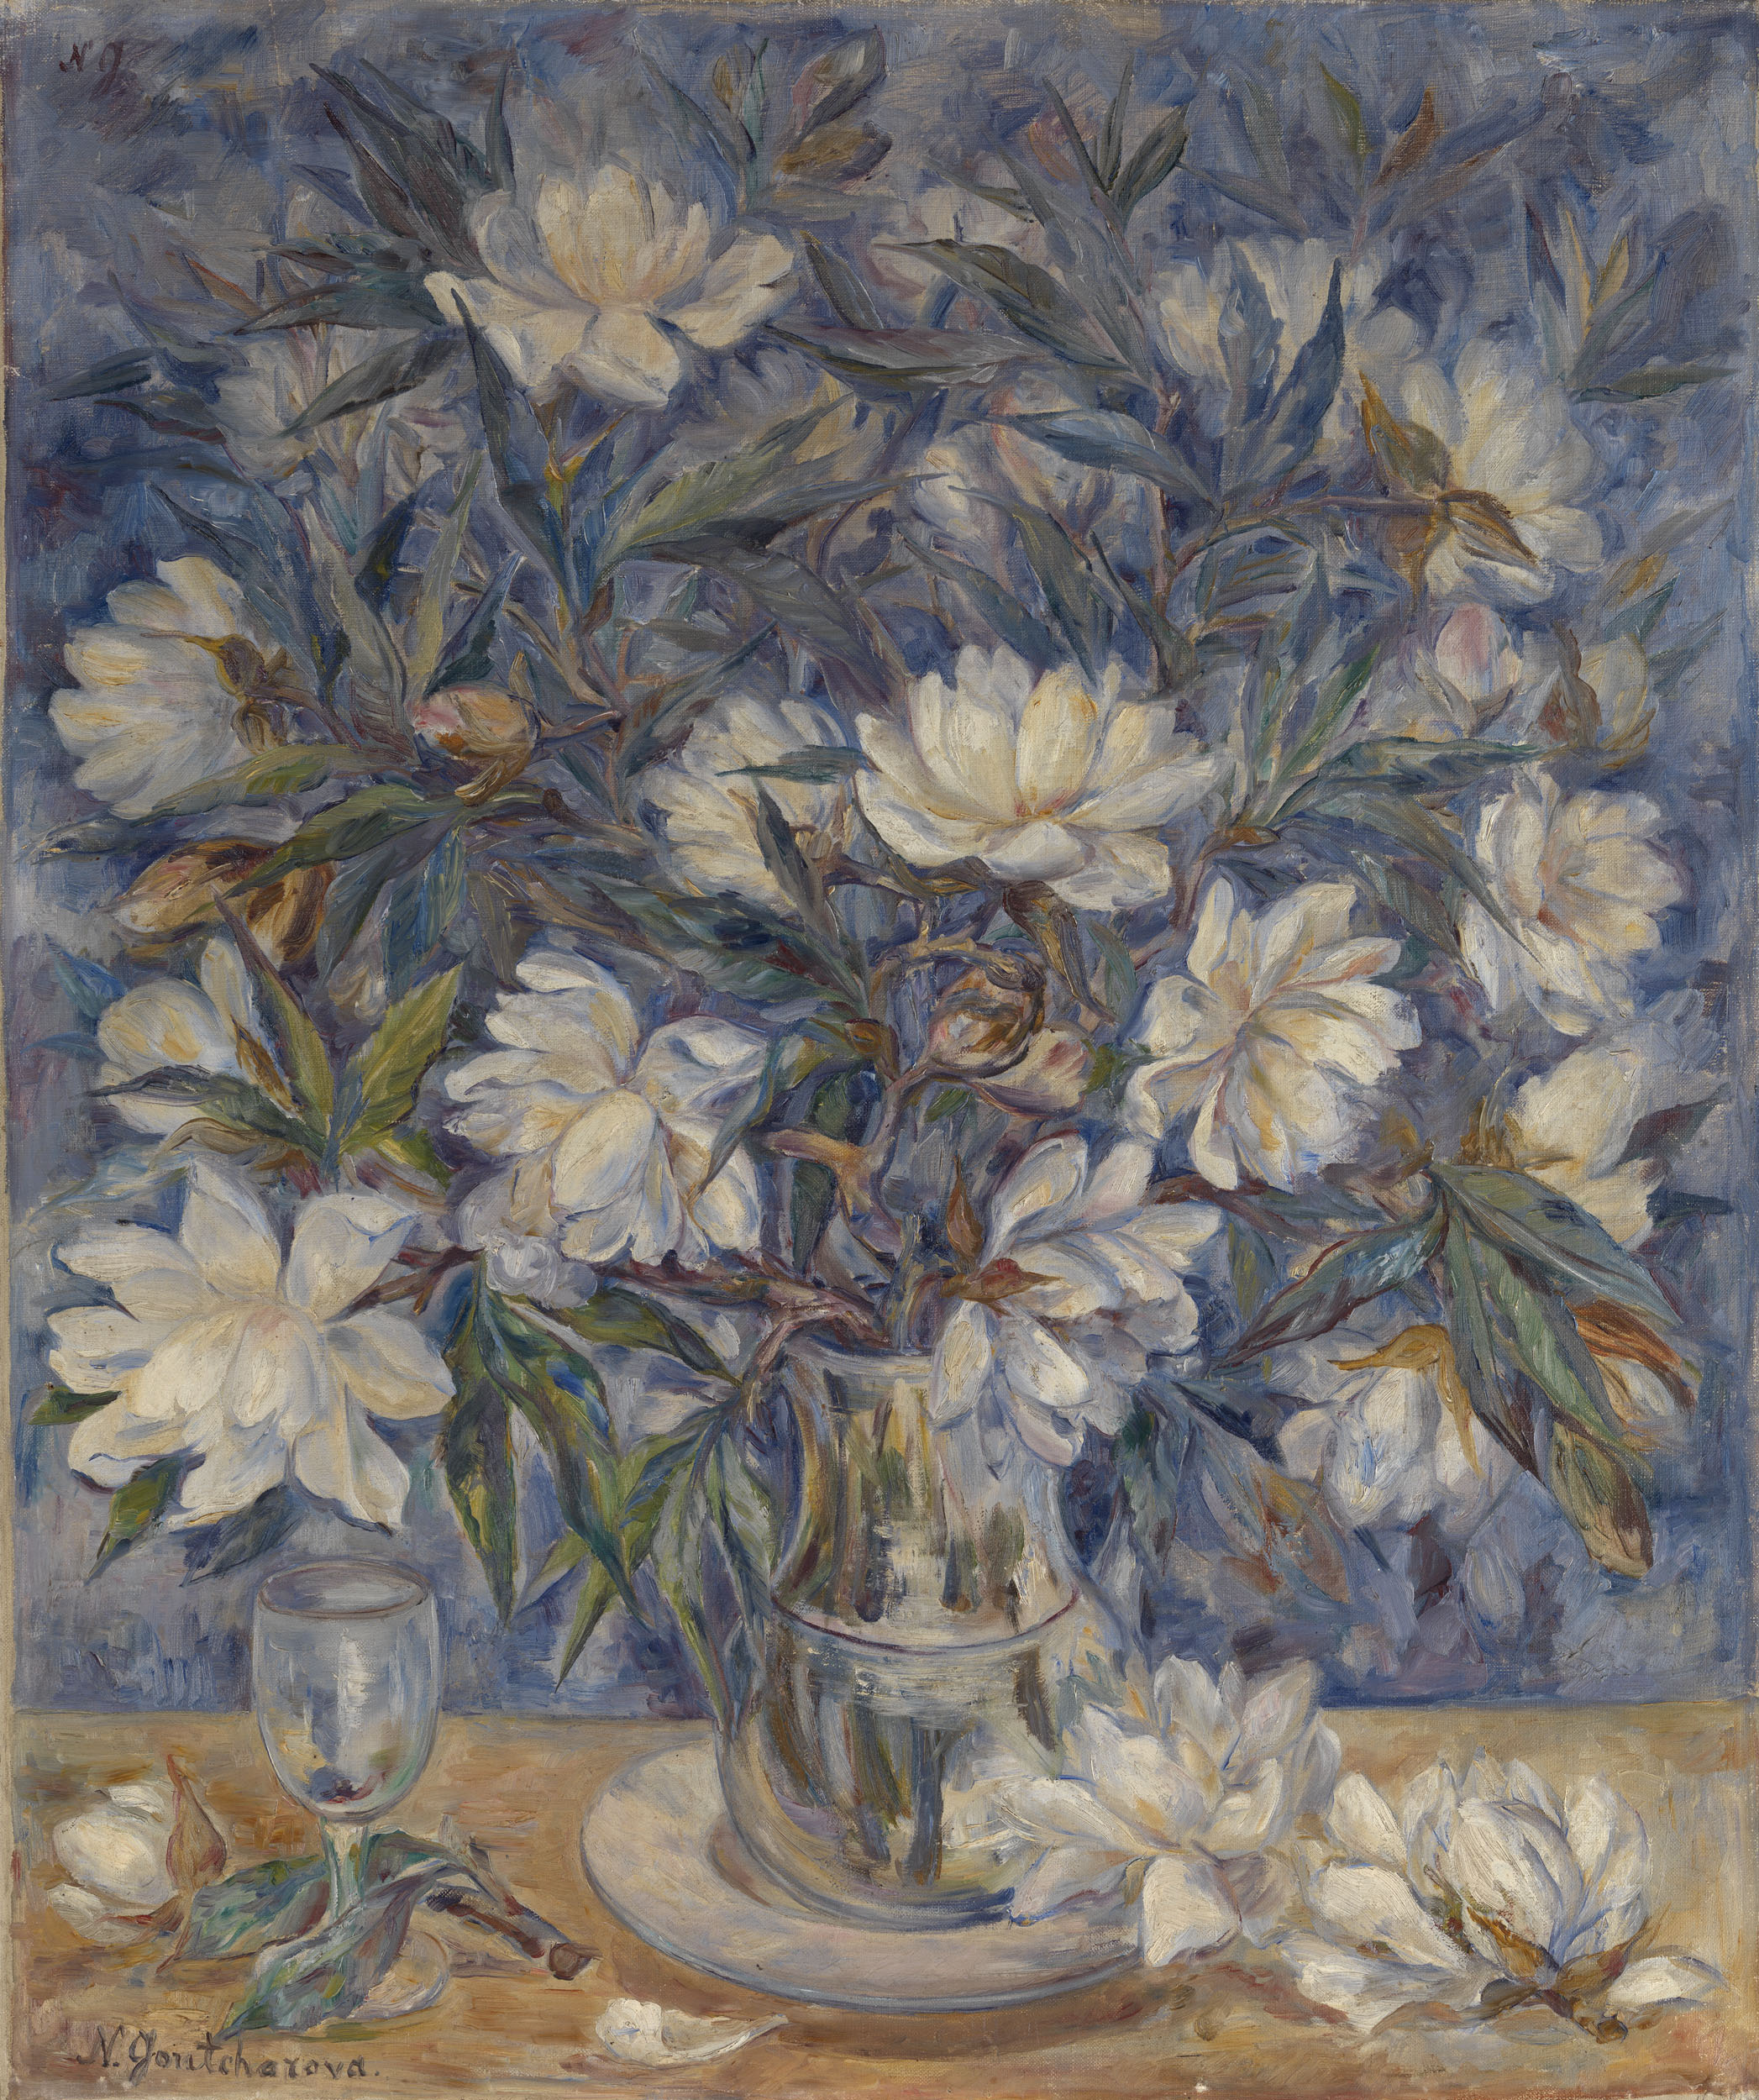 Lot 19 Natalia Goncharova, Still Life with Magnolias and a Glass